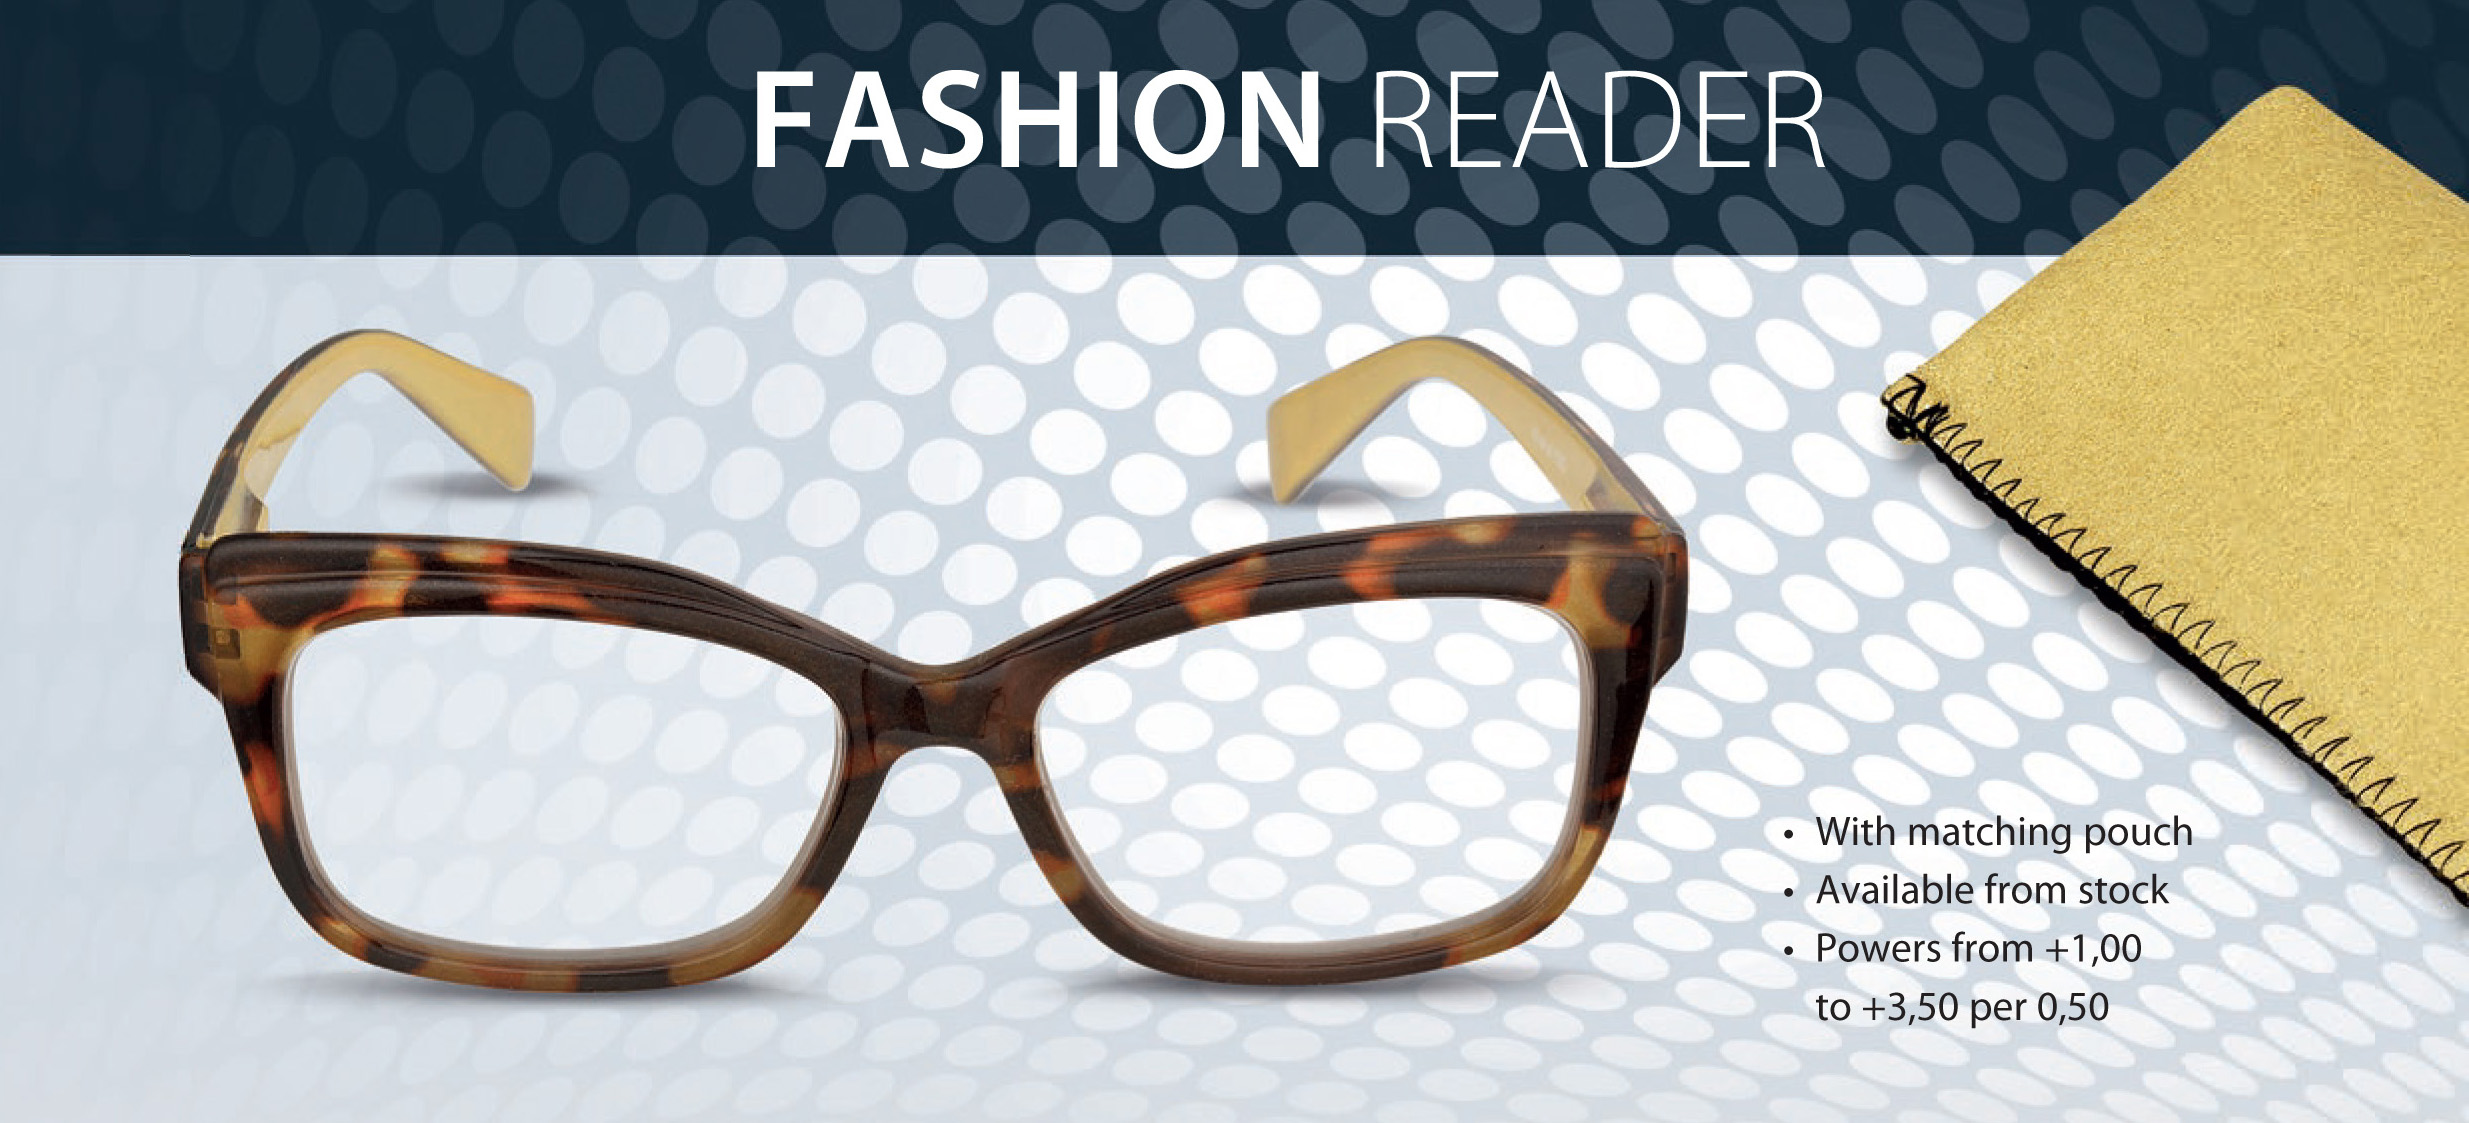 FASHION READER